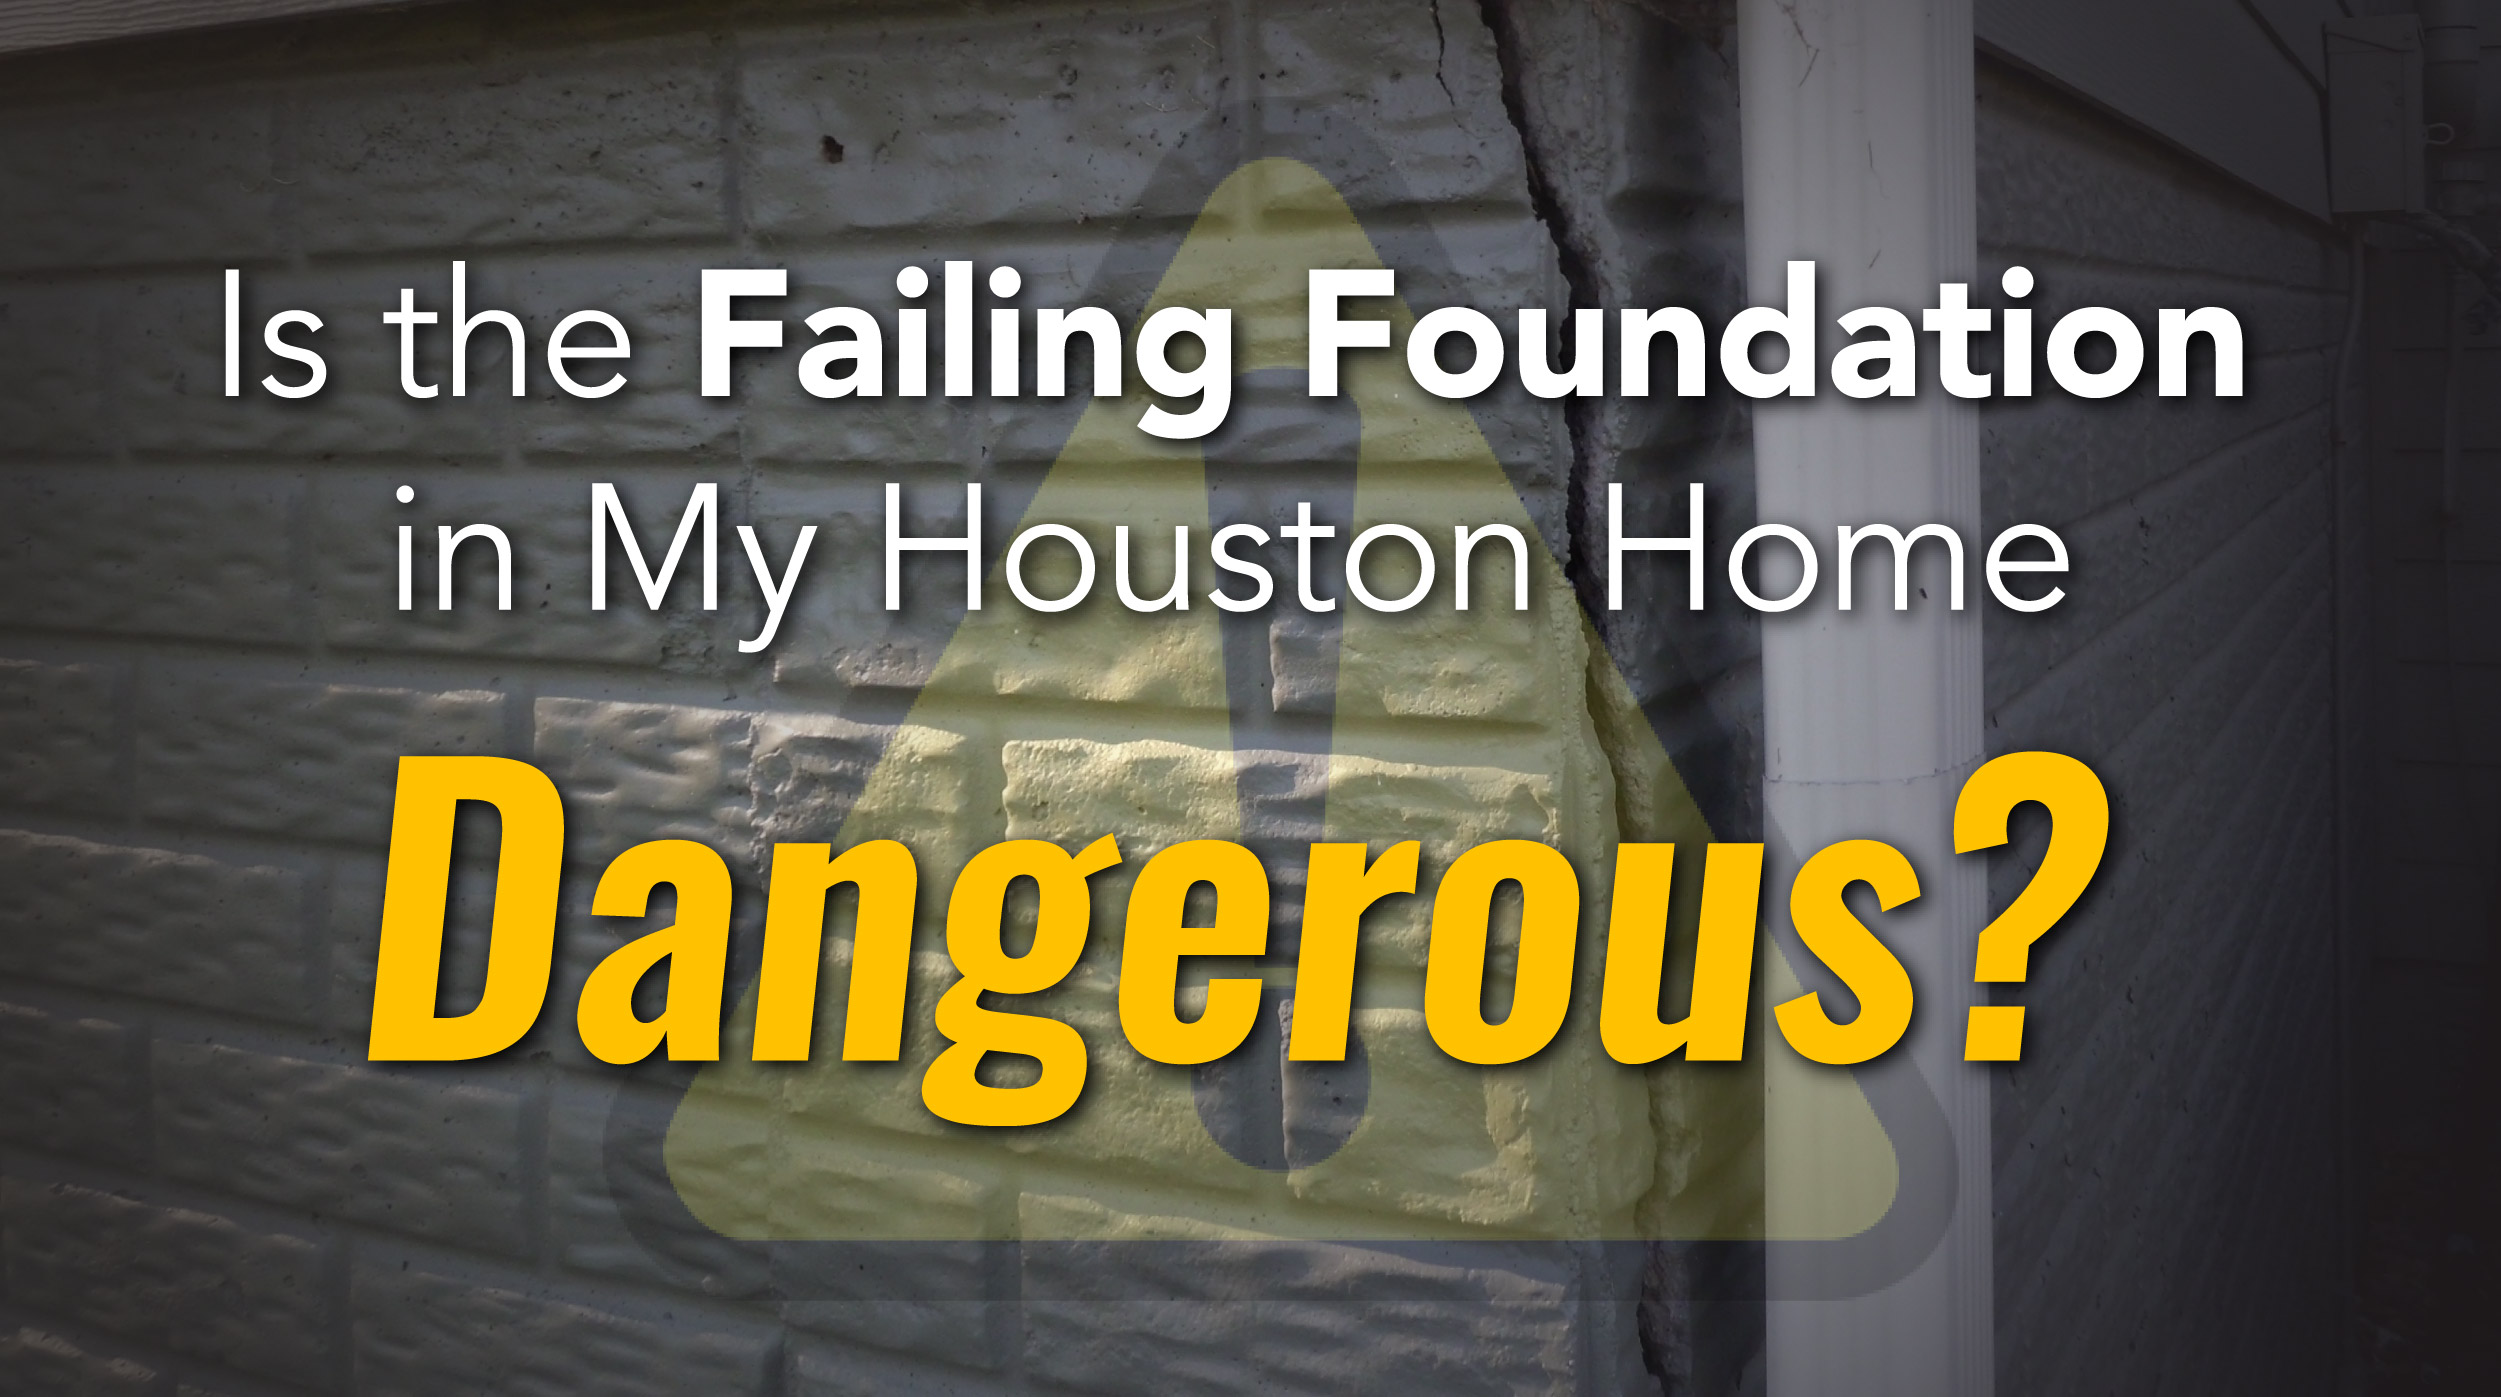 Is the Failing Foundation in My Houston Home Dangerous?